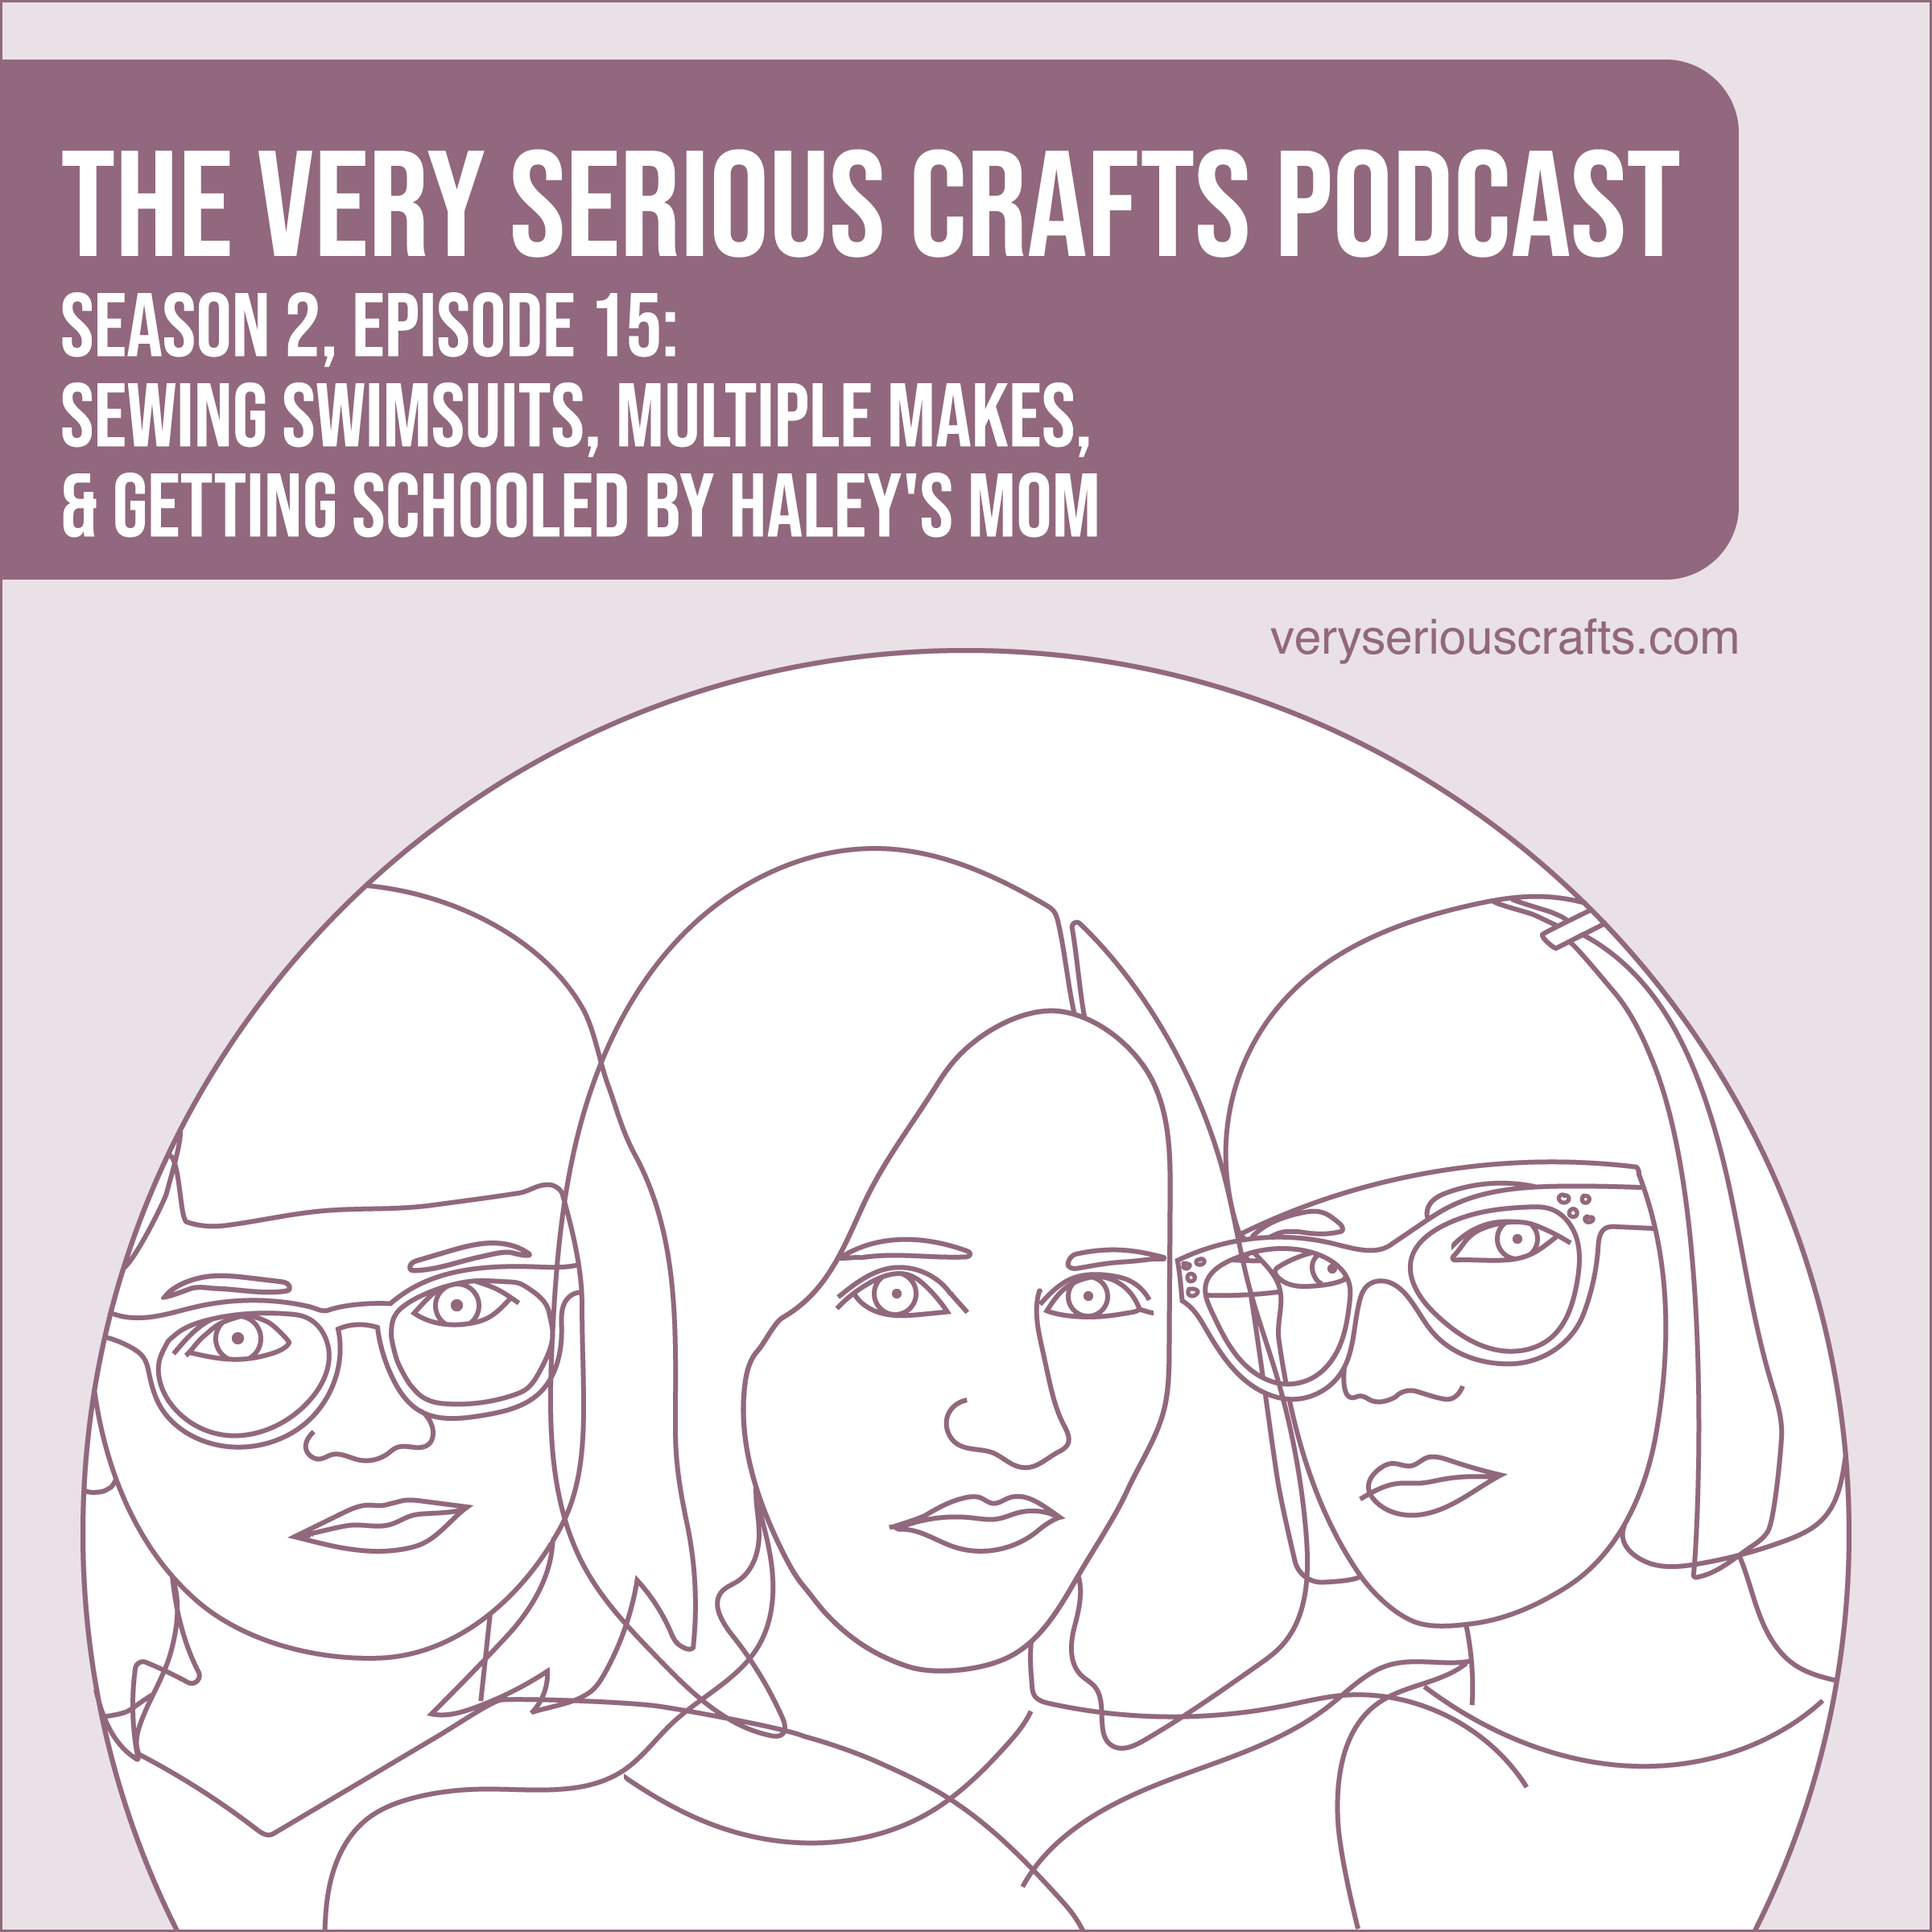 S2E15: Sewing Swimsuits, Multiple Makes, and Getting Schooled by Haley's Mom